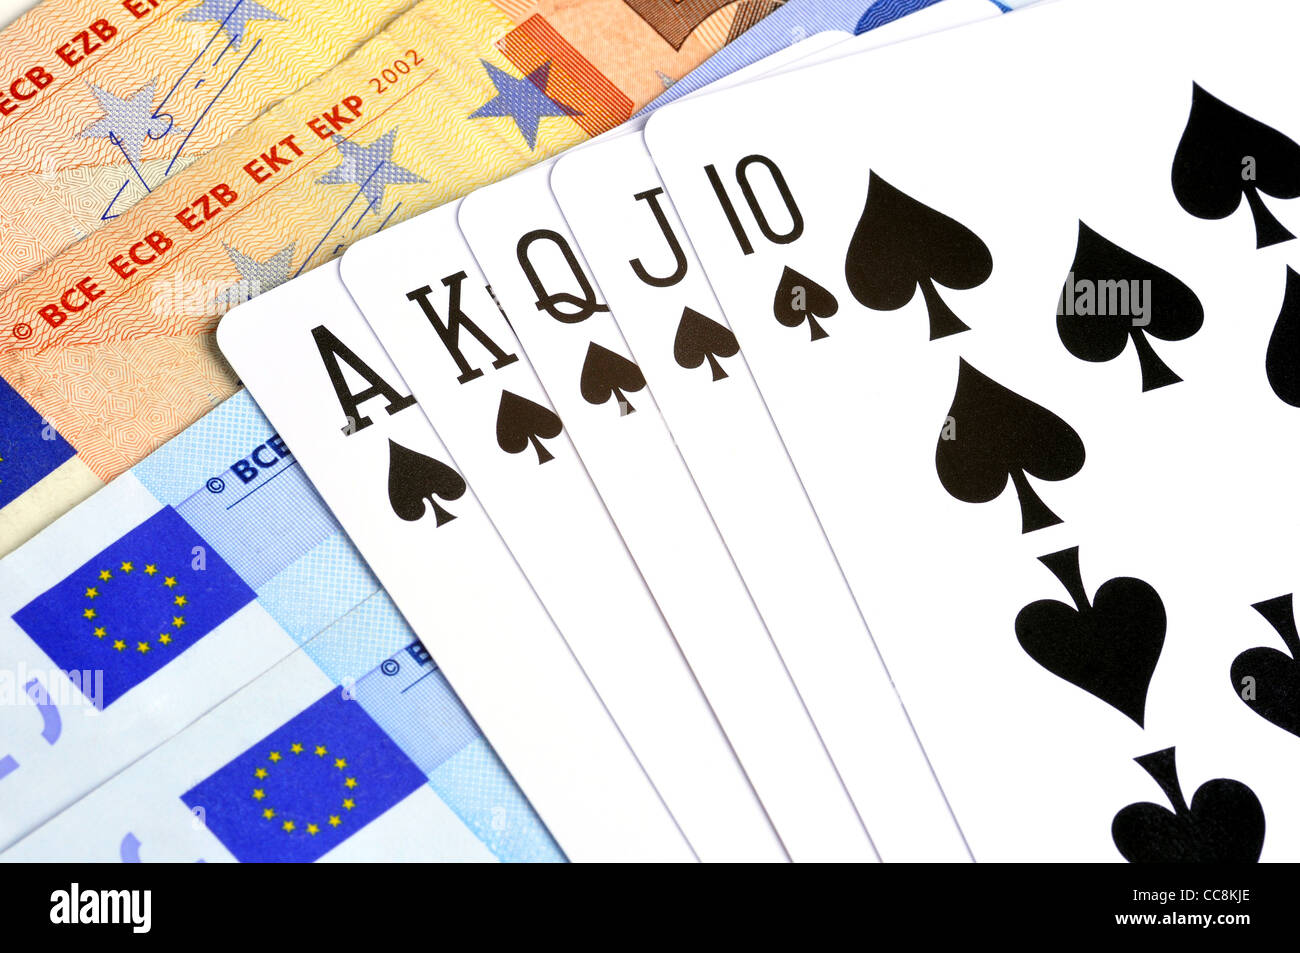 Royal Flush poker hand on top of bank notes - Stock Image